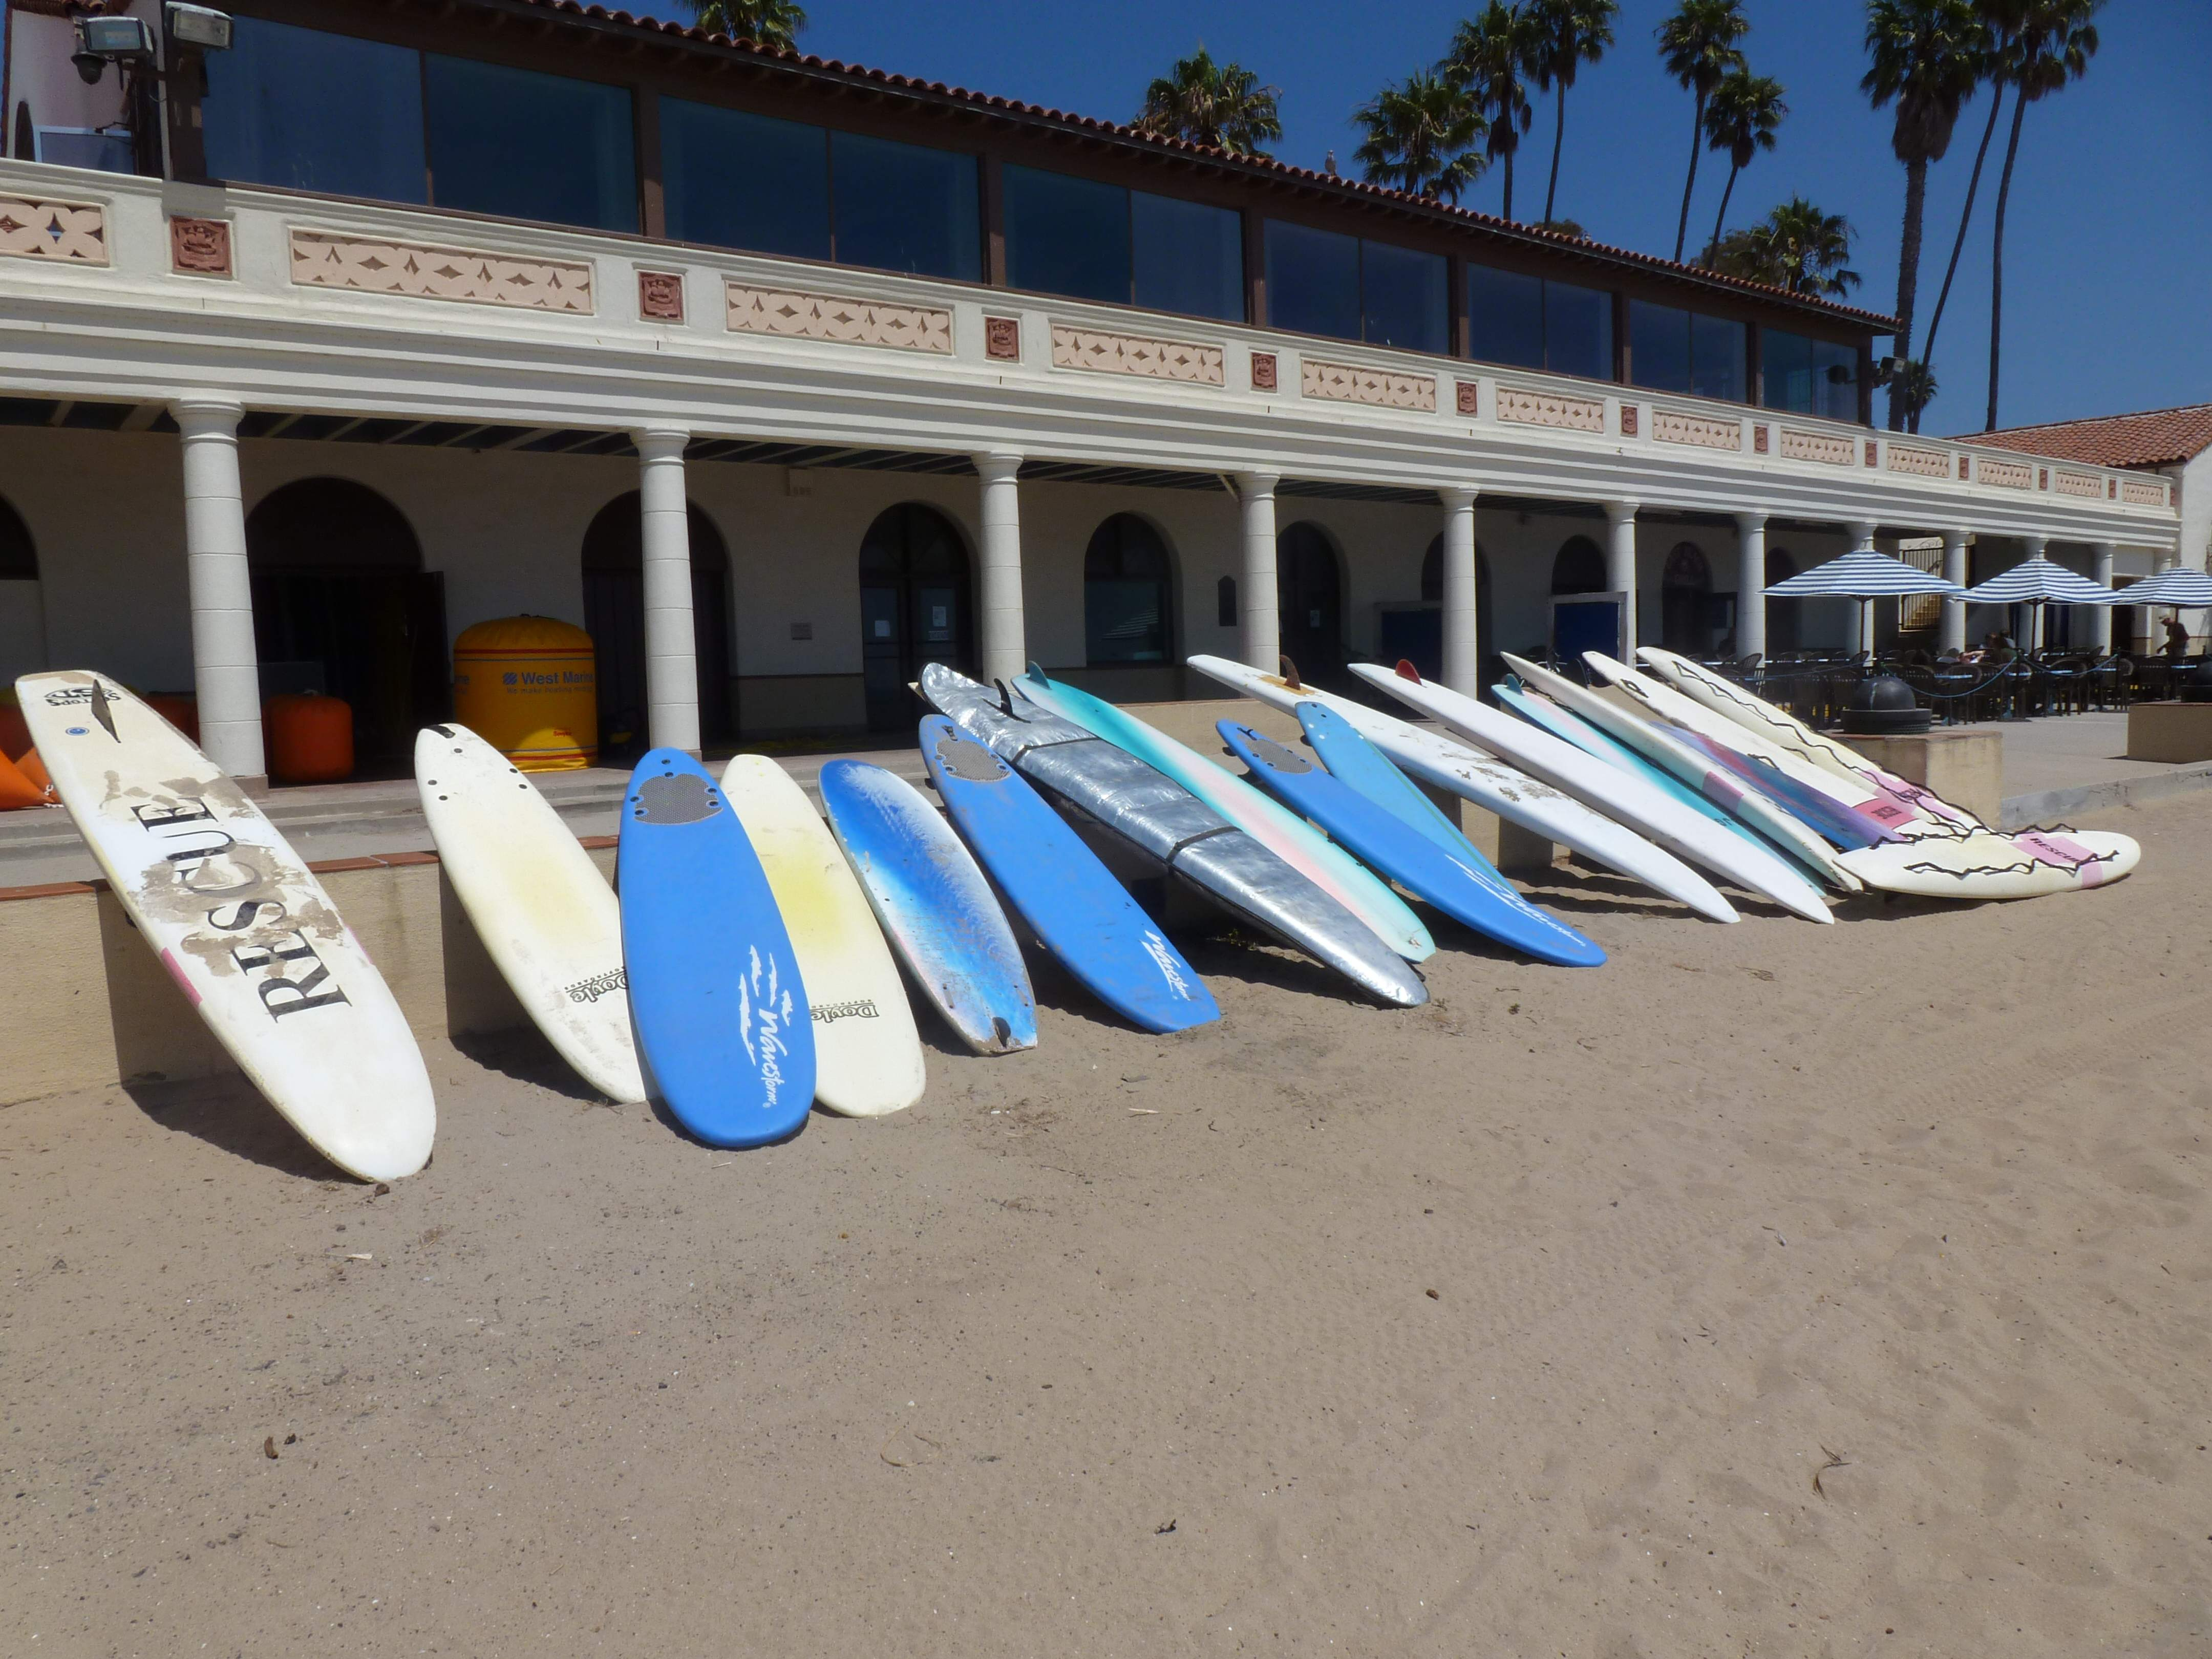 Bathhouse boards